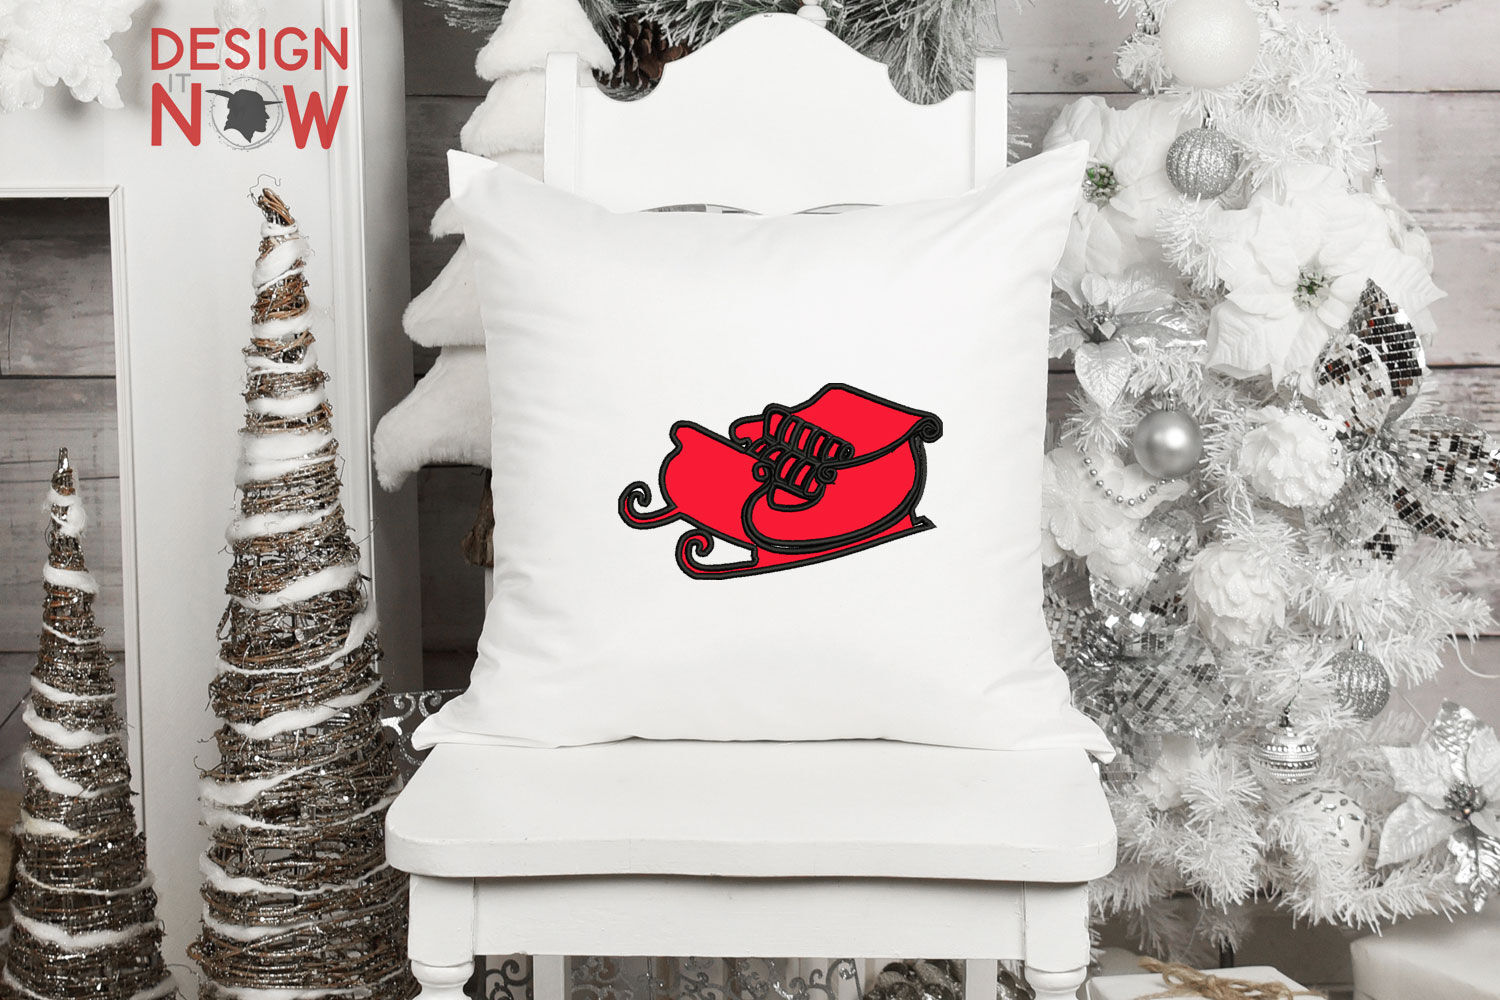 Sleigh Applique Design Christmas Embroidery Design Holiday